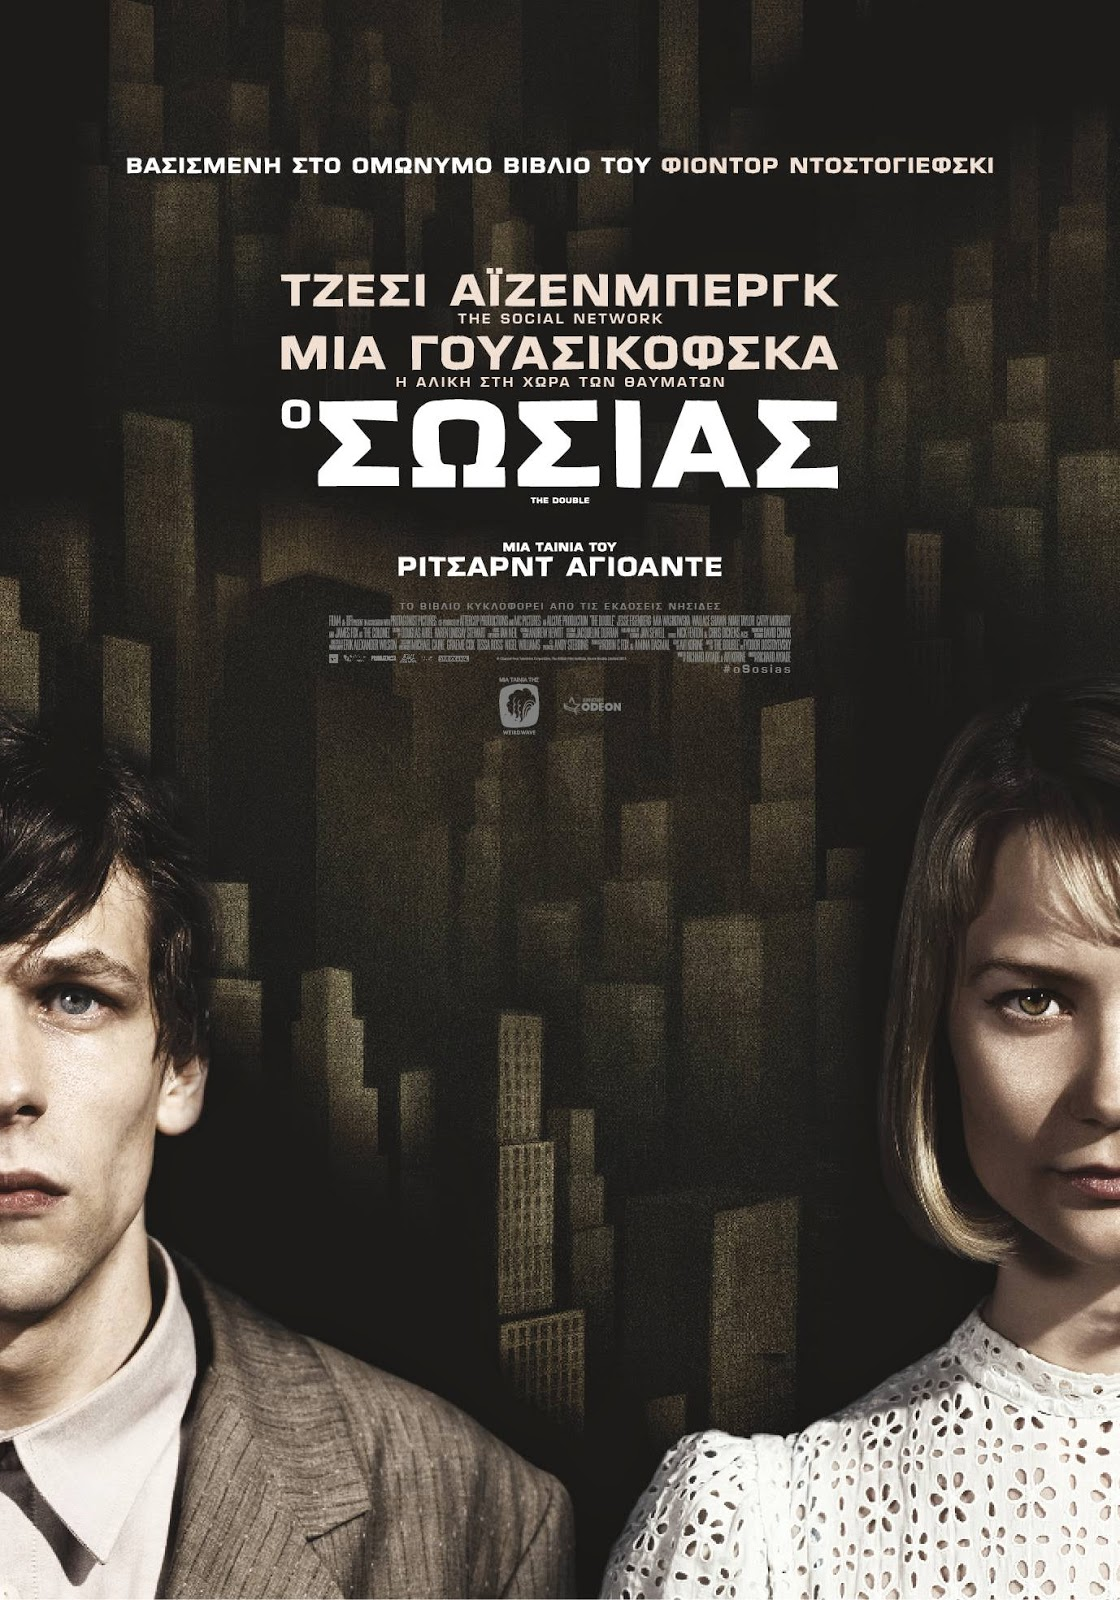 The Double - Ο Σωσίας (2013)